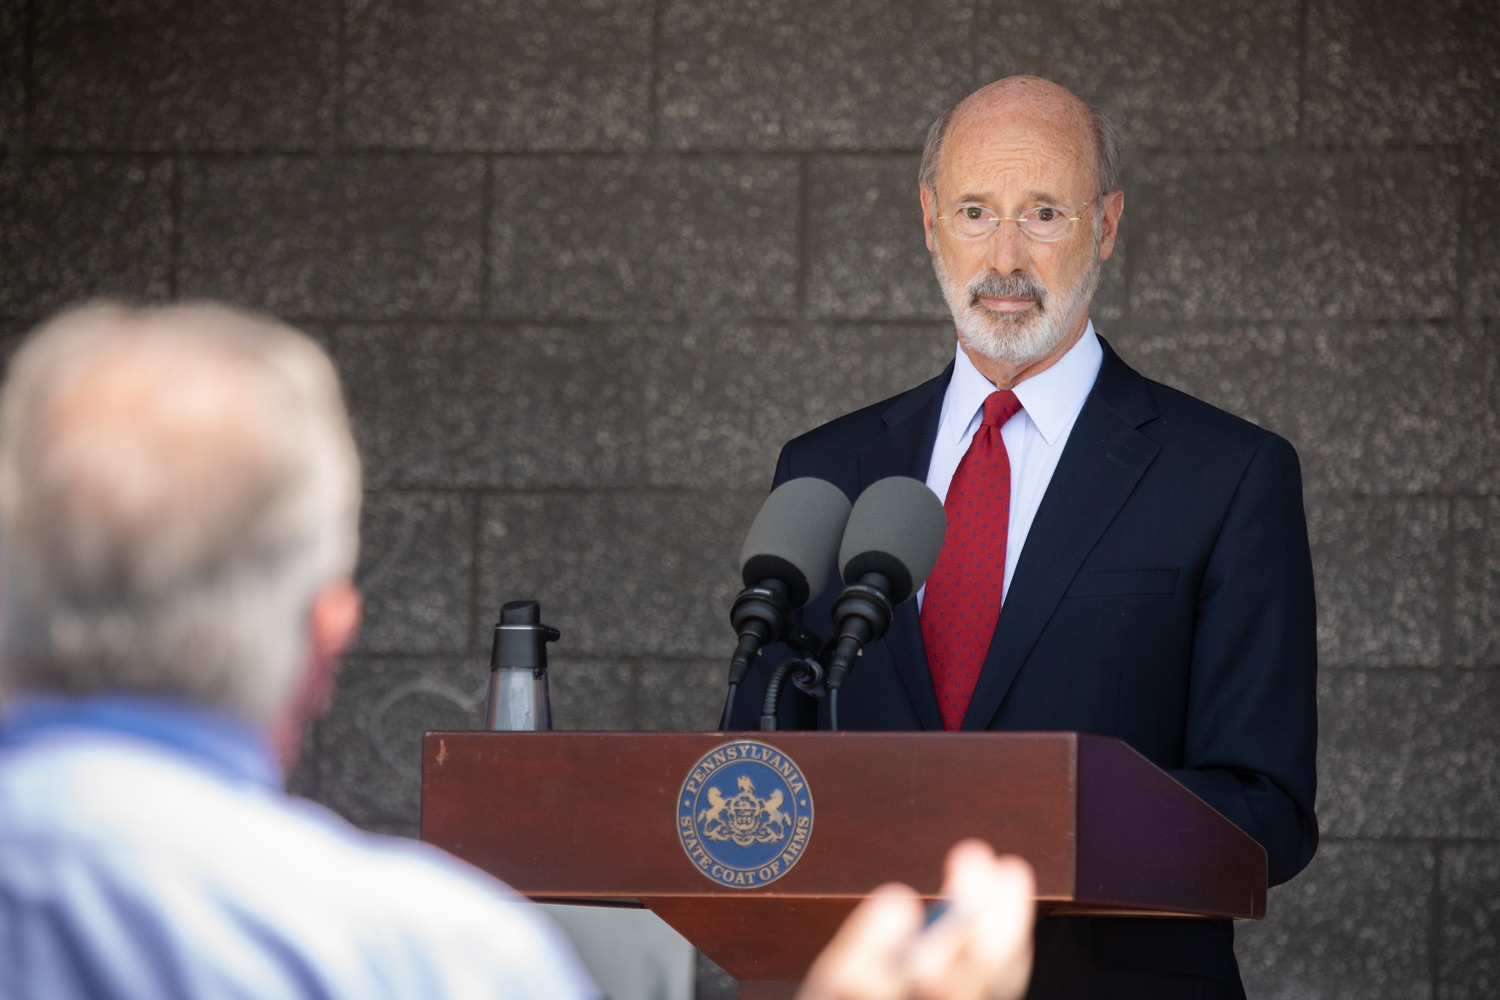 "<a href=""https://filesource.wostreaming.net/commonwealthofpa/photo/18143_gov_cares_dz_14.jpg"" target=""_blank"">⇣ Download Photo<br></a>Pennsylvania Governor Tom Wolf speaking with the press.  Governor Tom Wolf visited the child care center at PSECU headquarters in Harrisburg today to announce $53 million in additional financial support for child care providers that have suffered during COVID-19.  Harrisburg, PA  July 6, 2020.."